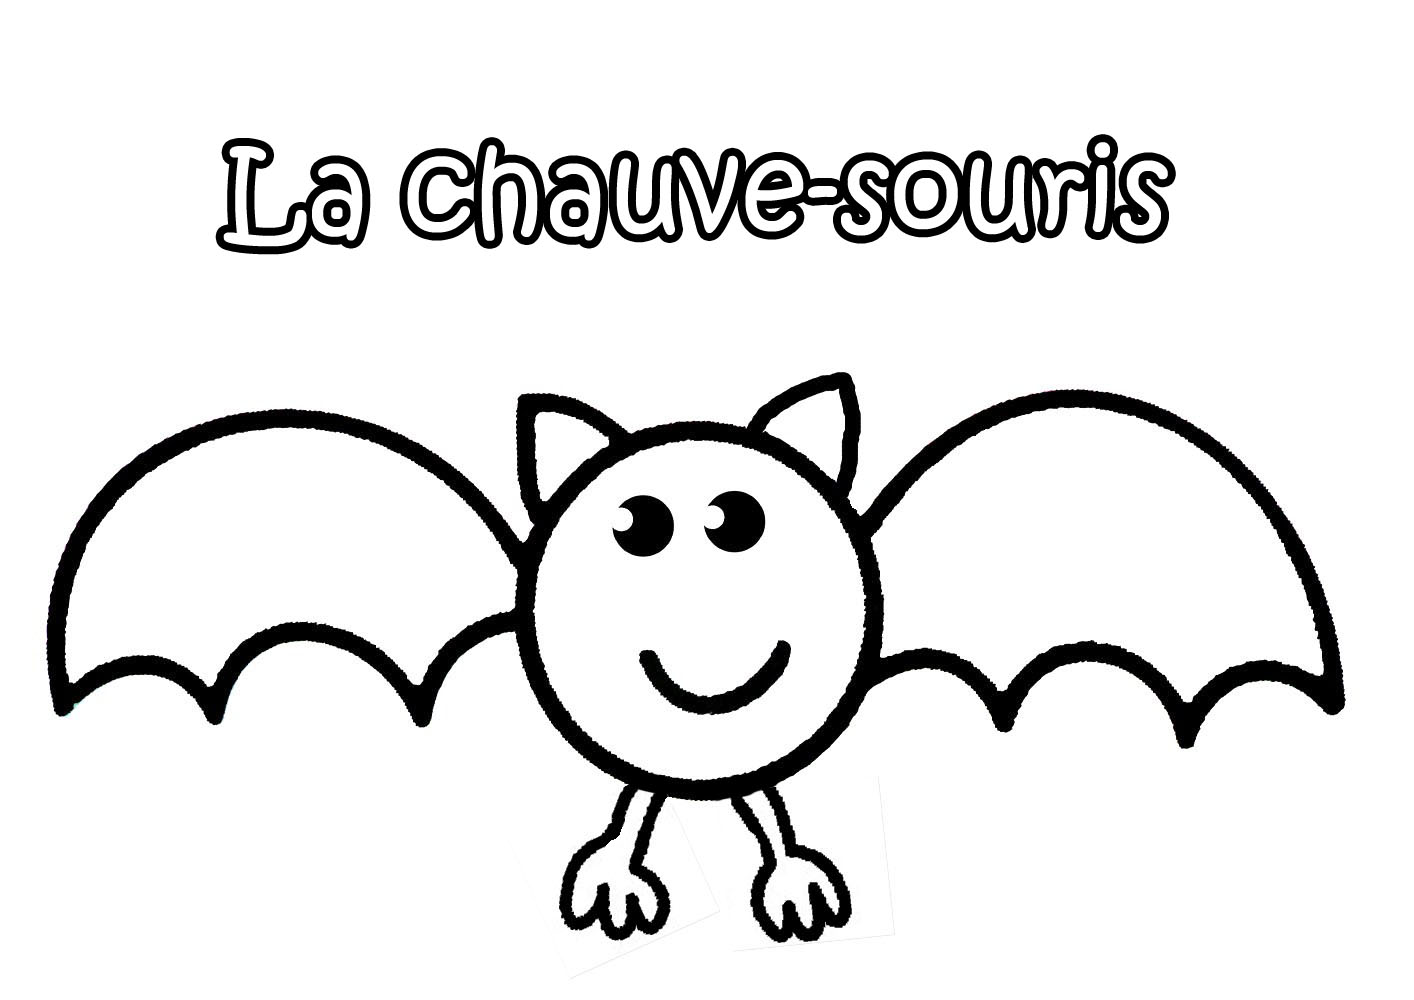 dessin colorier chauve souris gratuit. Black Bedroom Furniture Sets. Home Design Ideas